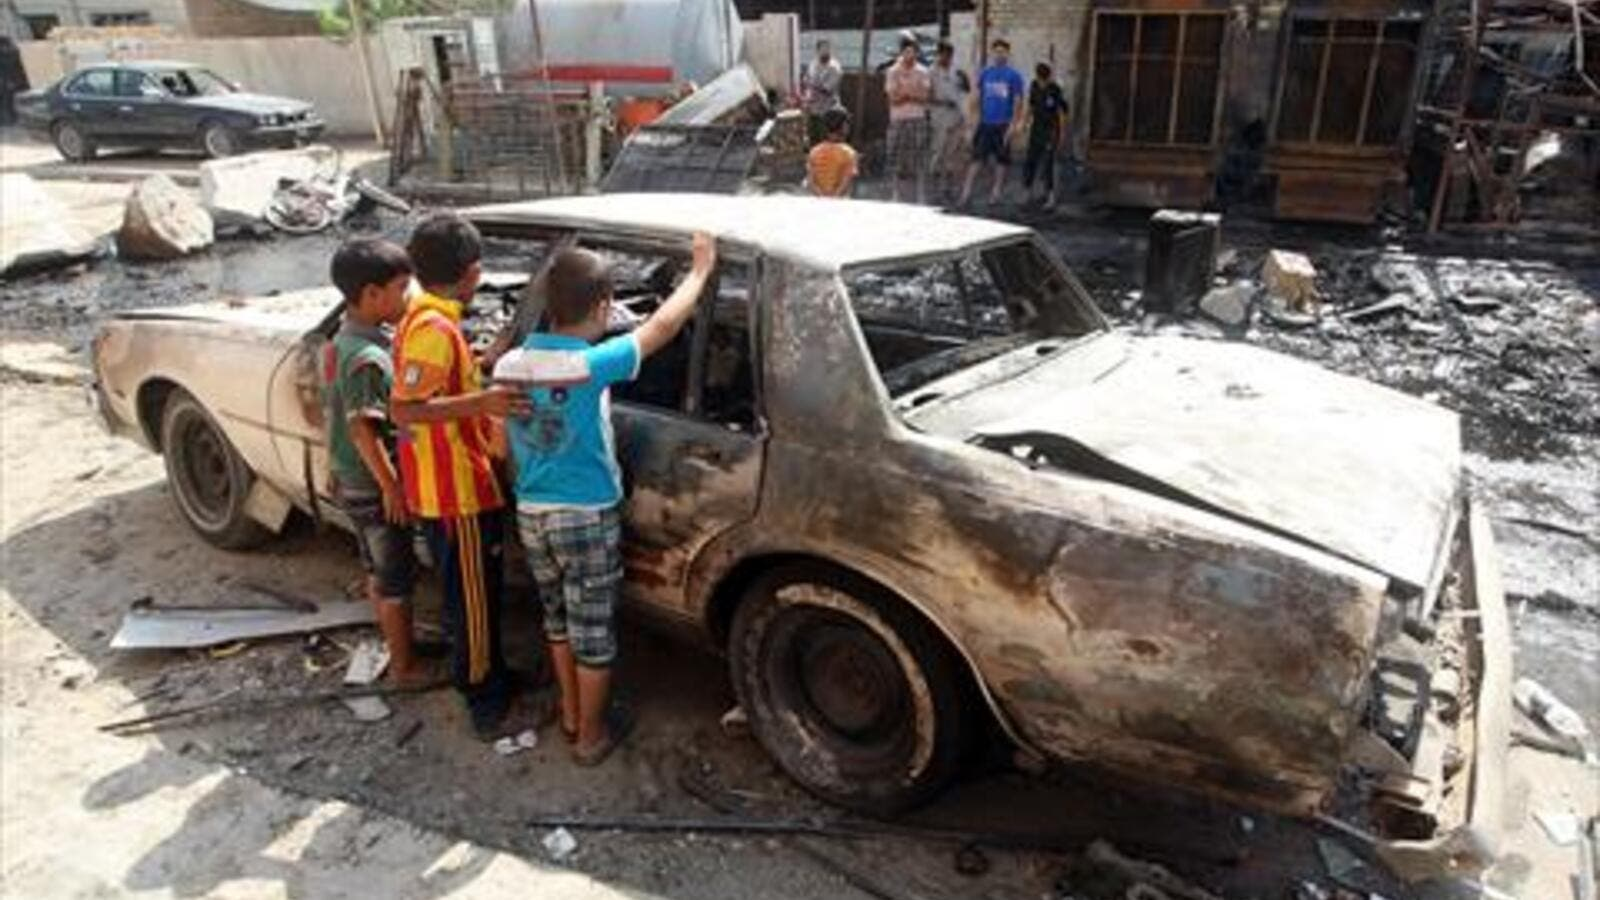 Iraqi children inspect a burnt-out car at the site of a car bomb attack that exploded the previous day in a commercial street of Baghdad's eastern neighbourhood of Mashtal on Monday. On Tuesday, a fresh wave of violence across the country killed at least 24 people. (AFP)